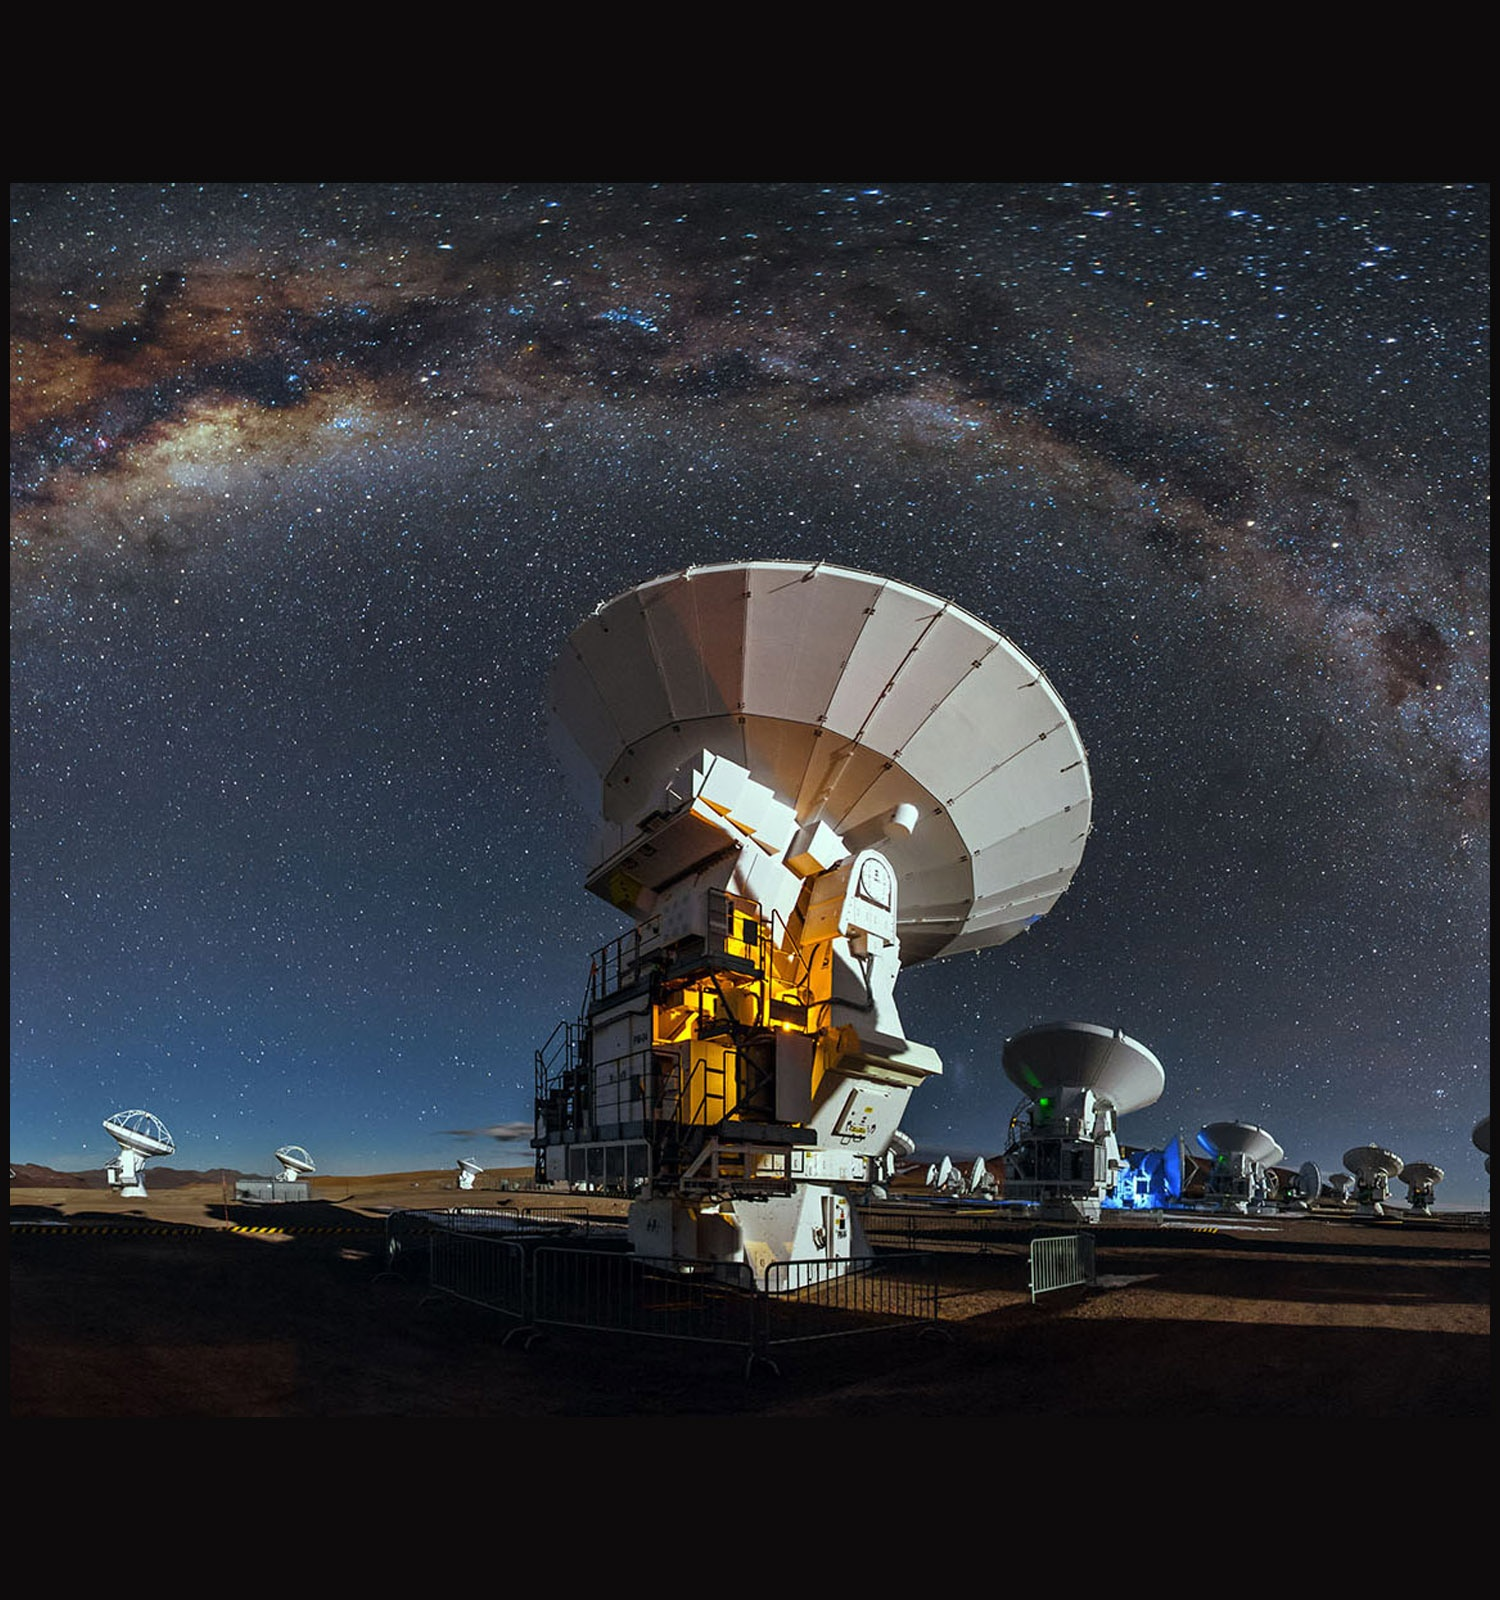 Antennas of the Atacama Large Millimeter/submilimeter Array.  Credit: A. Duro/ESO